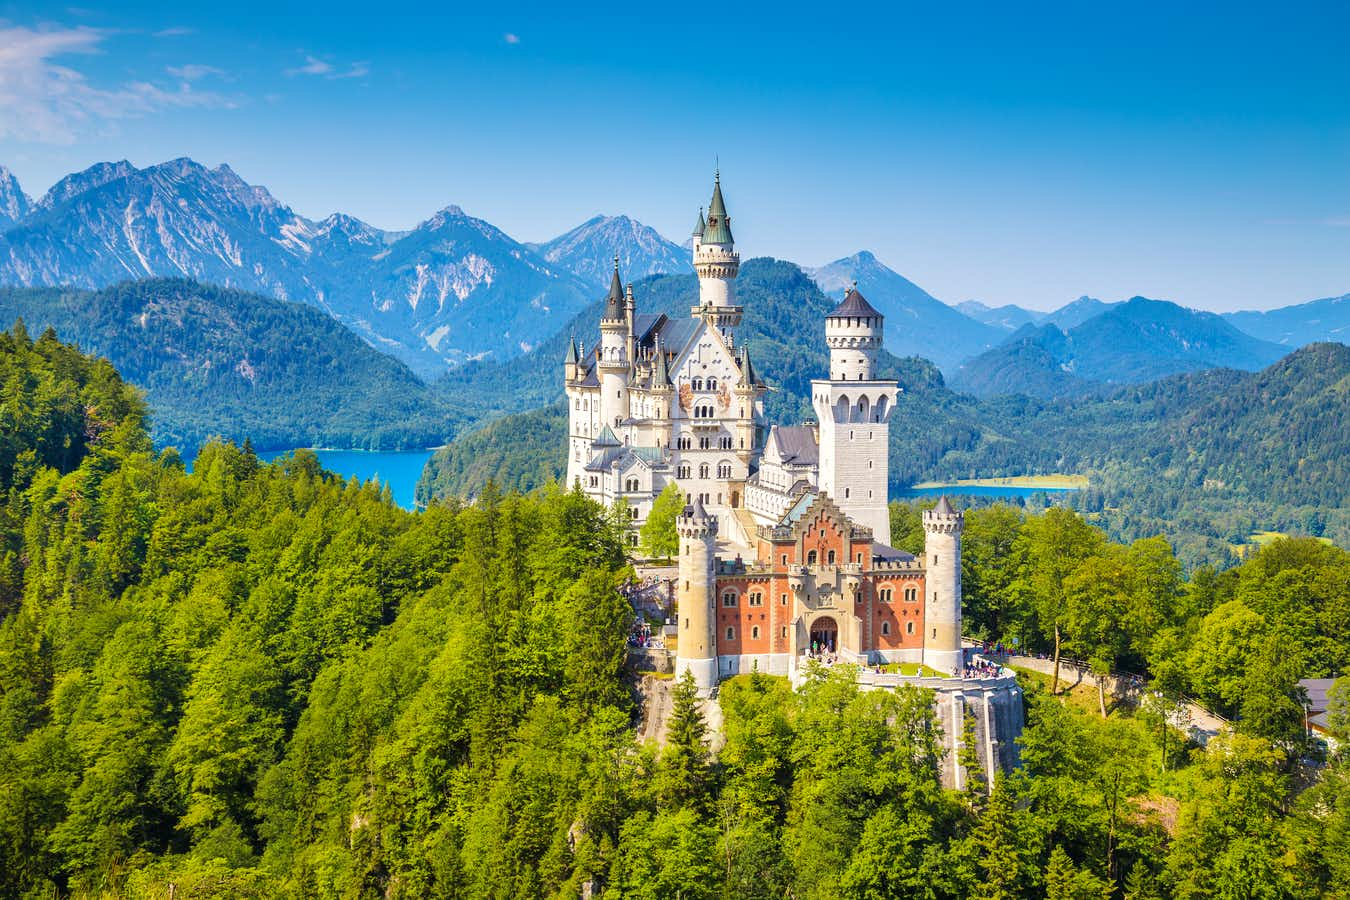 Oberammergau Passion Play & Bavaria's Fairy Tale Castles